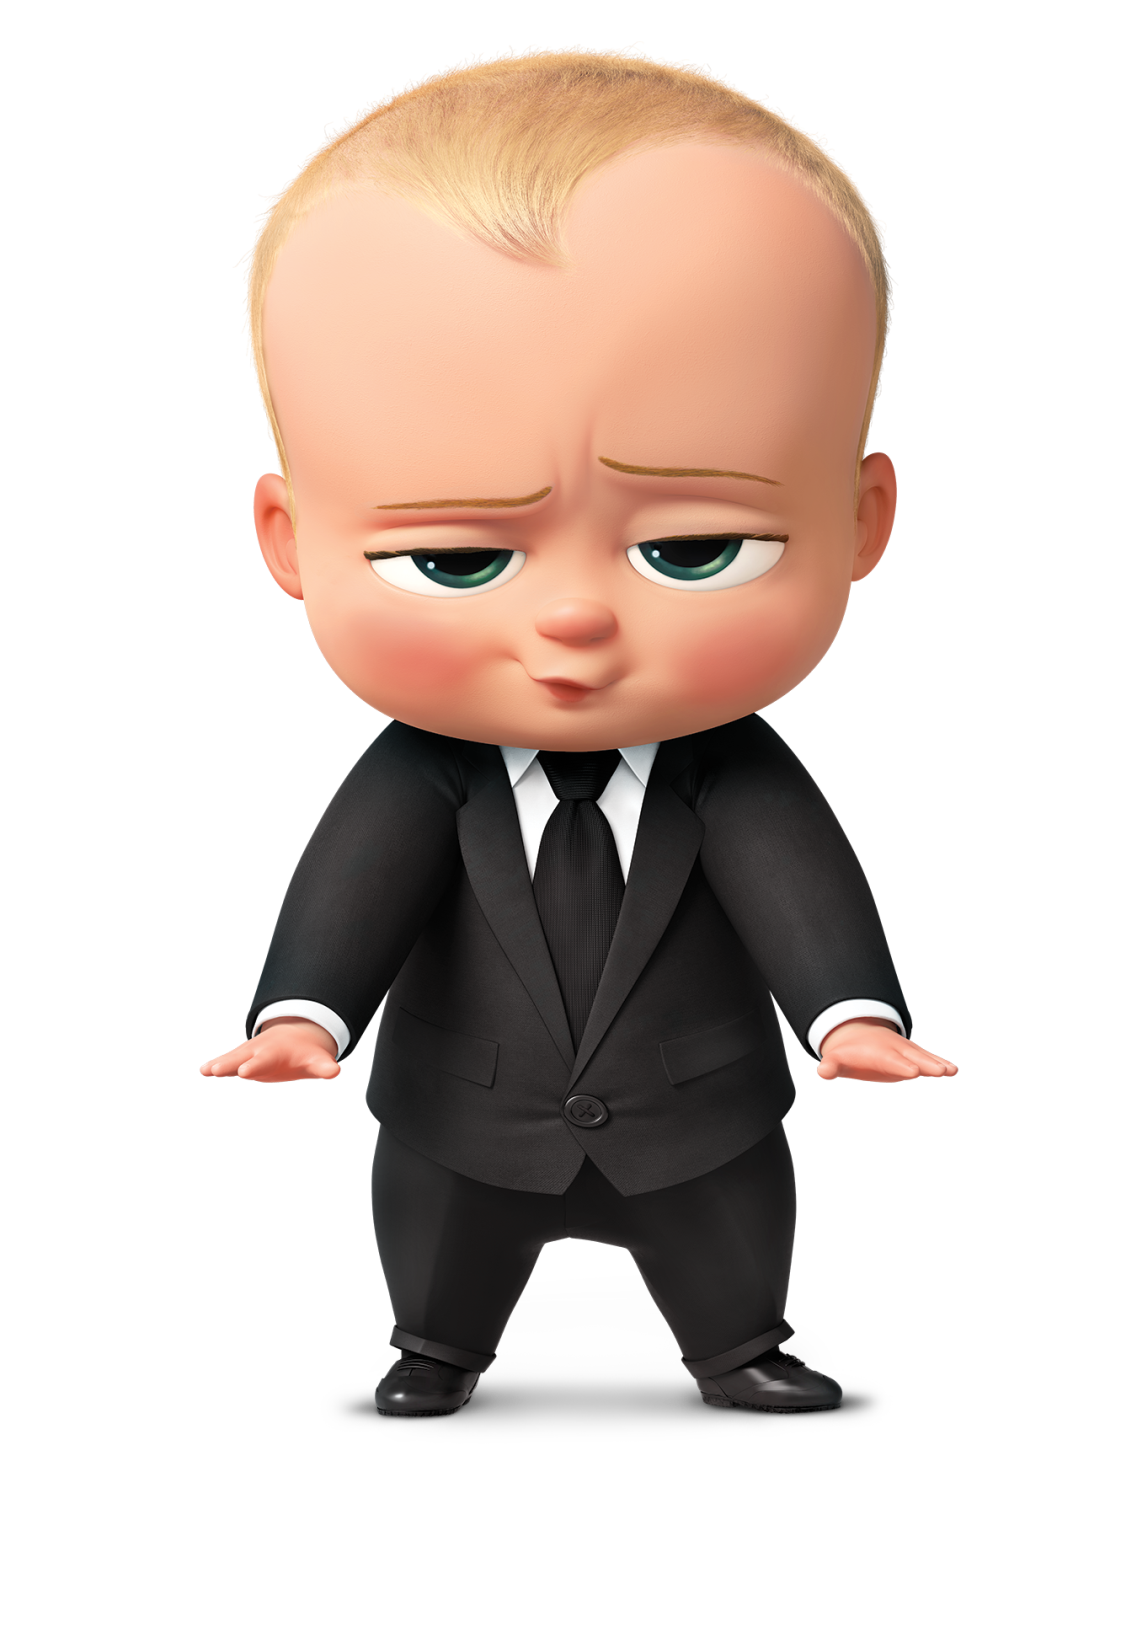 Diaper child infant transprent. The boss baby png clipart royalty free stock